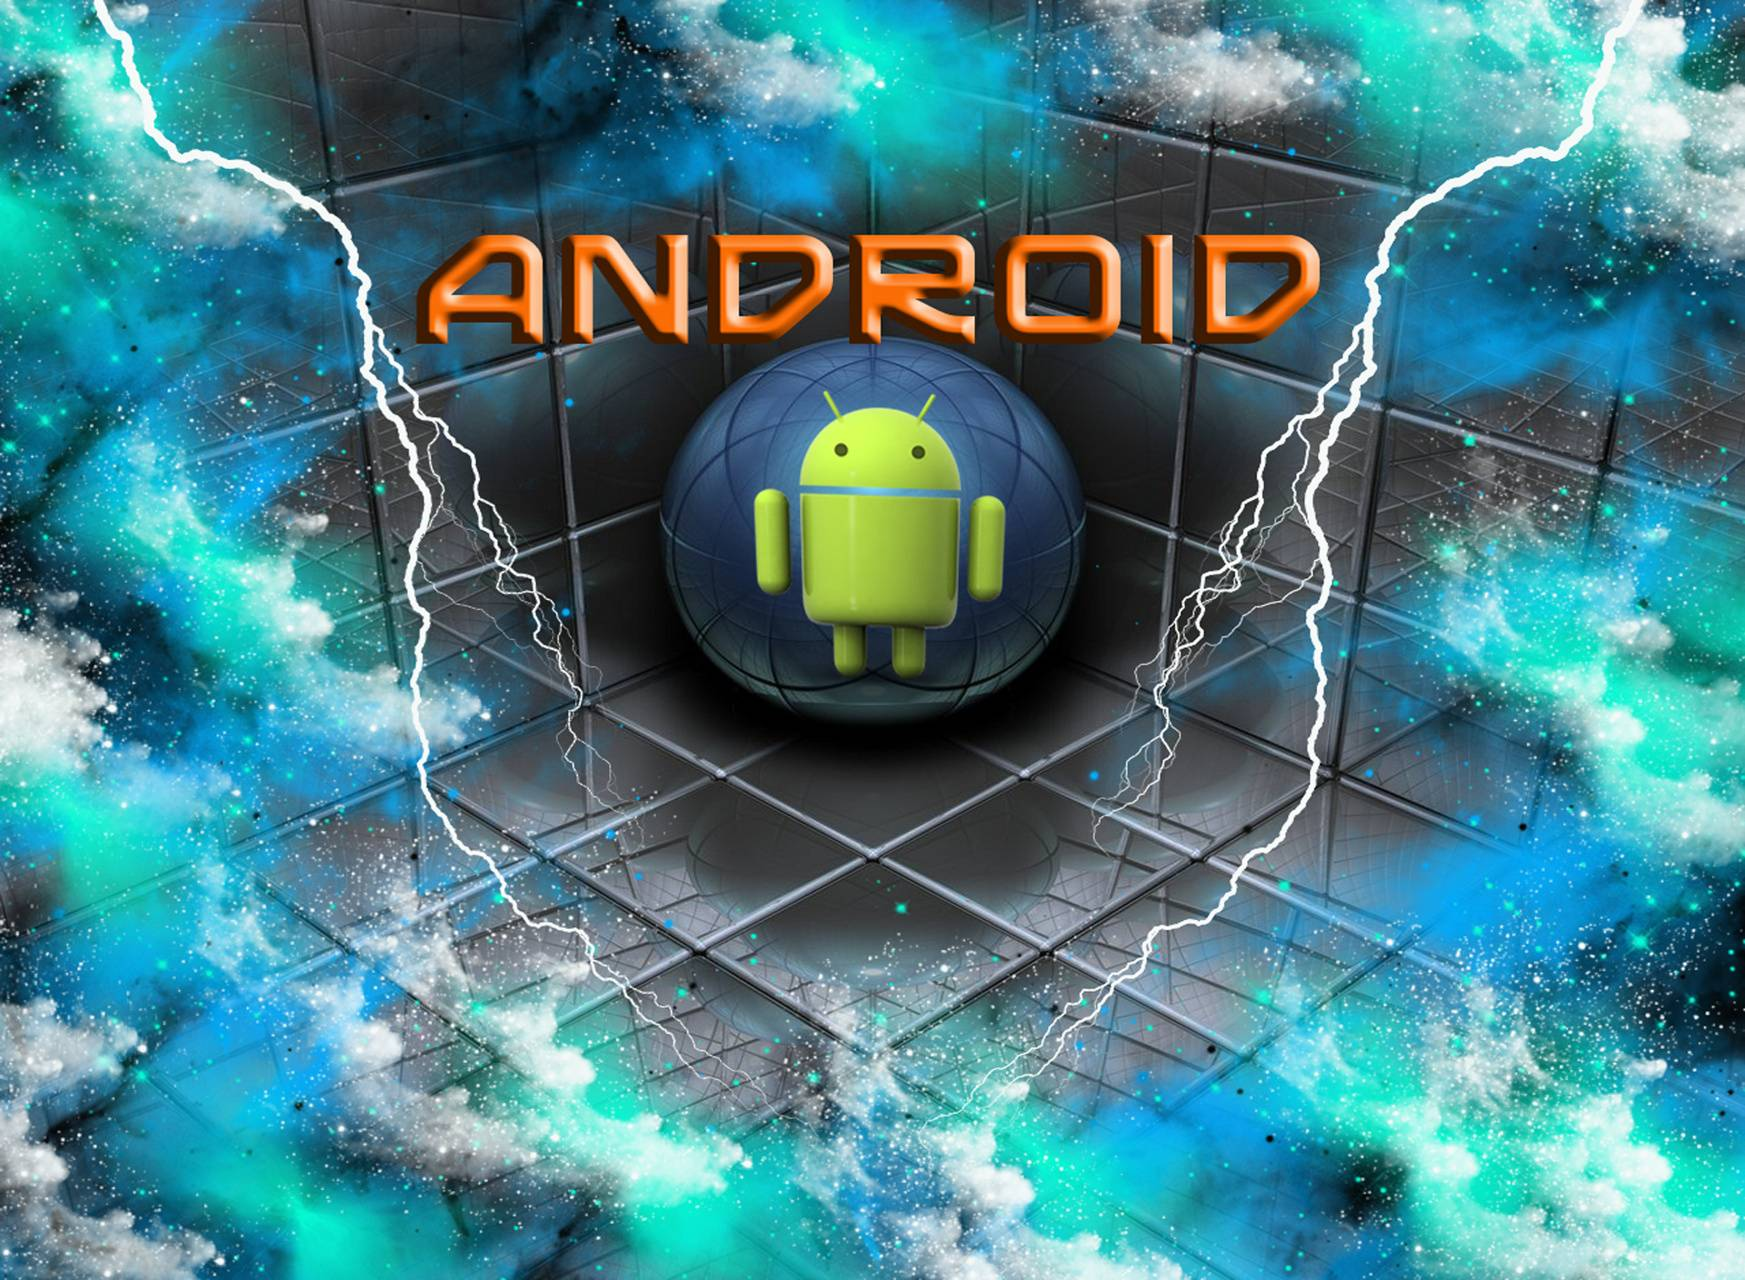 Android Logo7